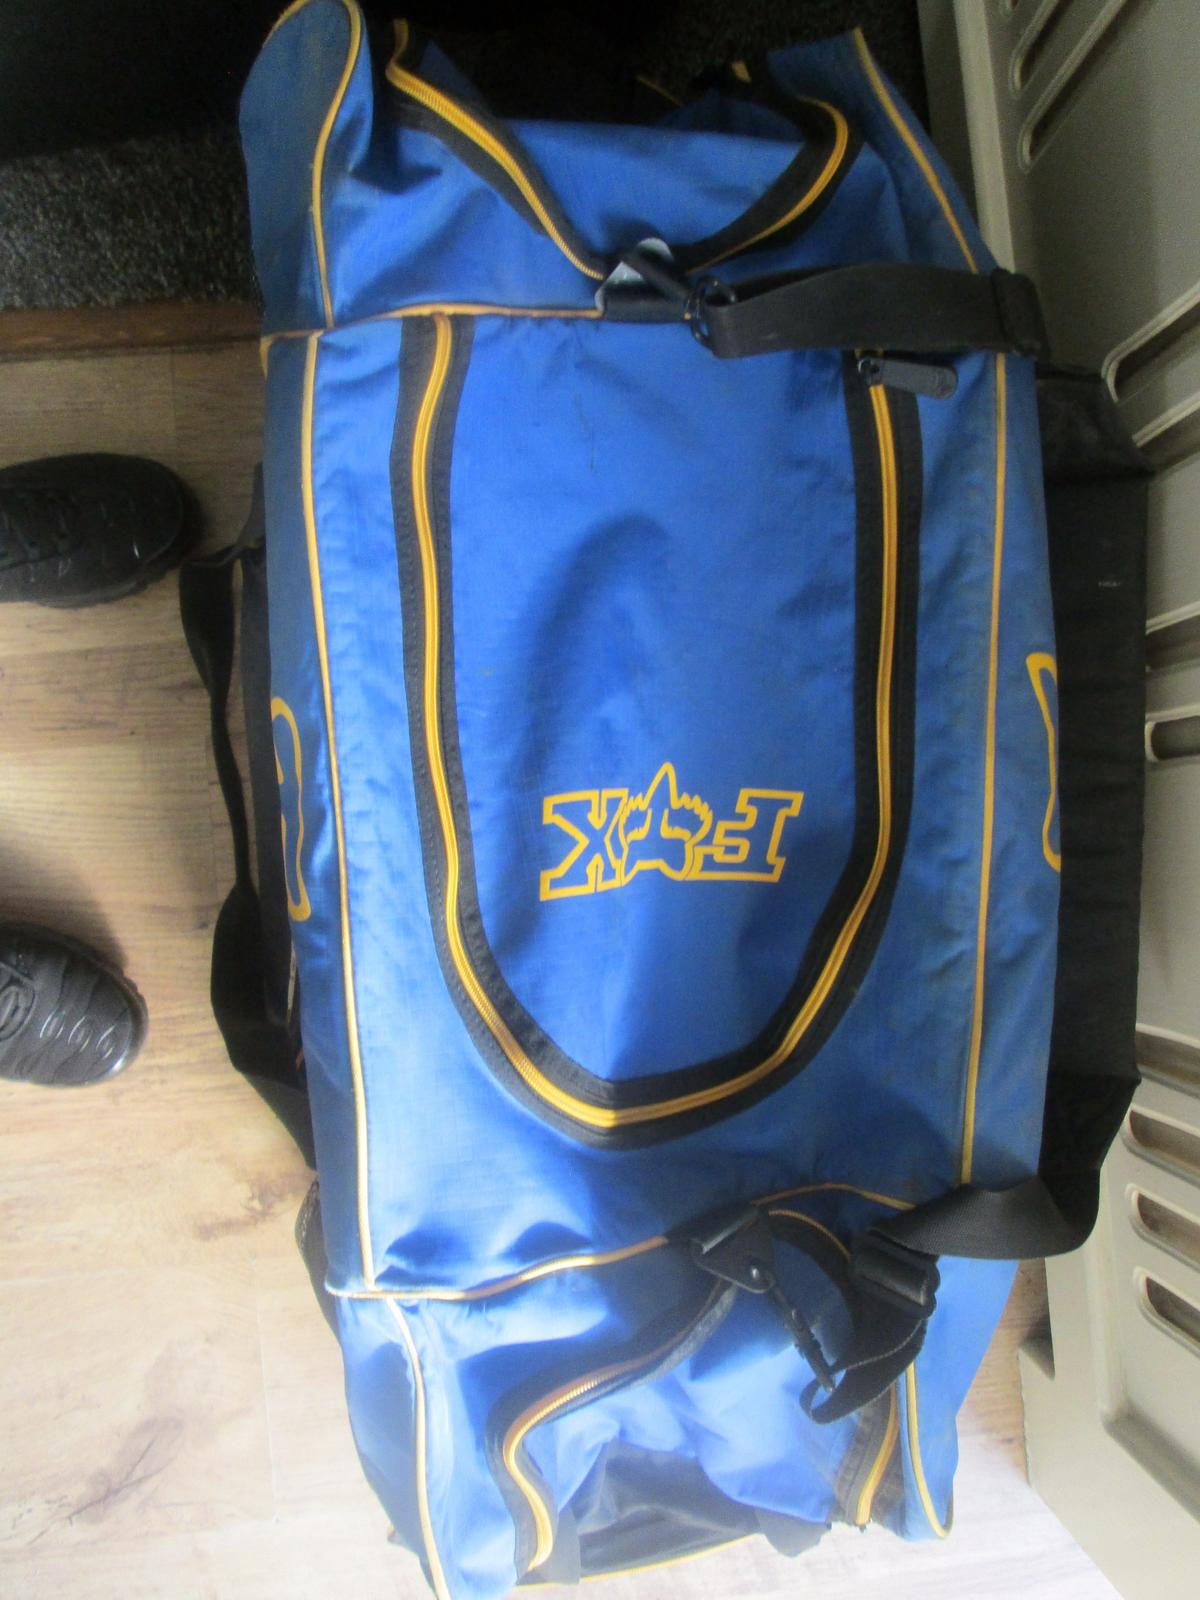 Fox Racing Motocross Gear Bag Kx Cr Yz Ktm In Ol2 Shaw For 50 00 For Sale Shpock